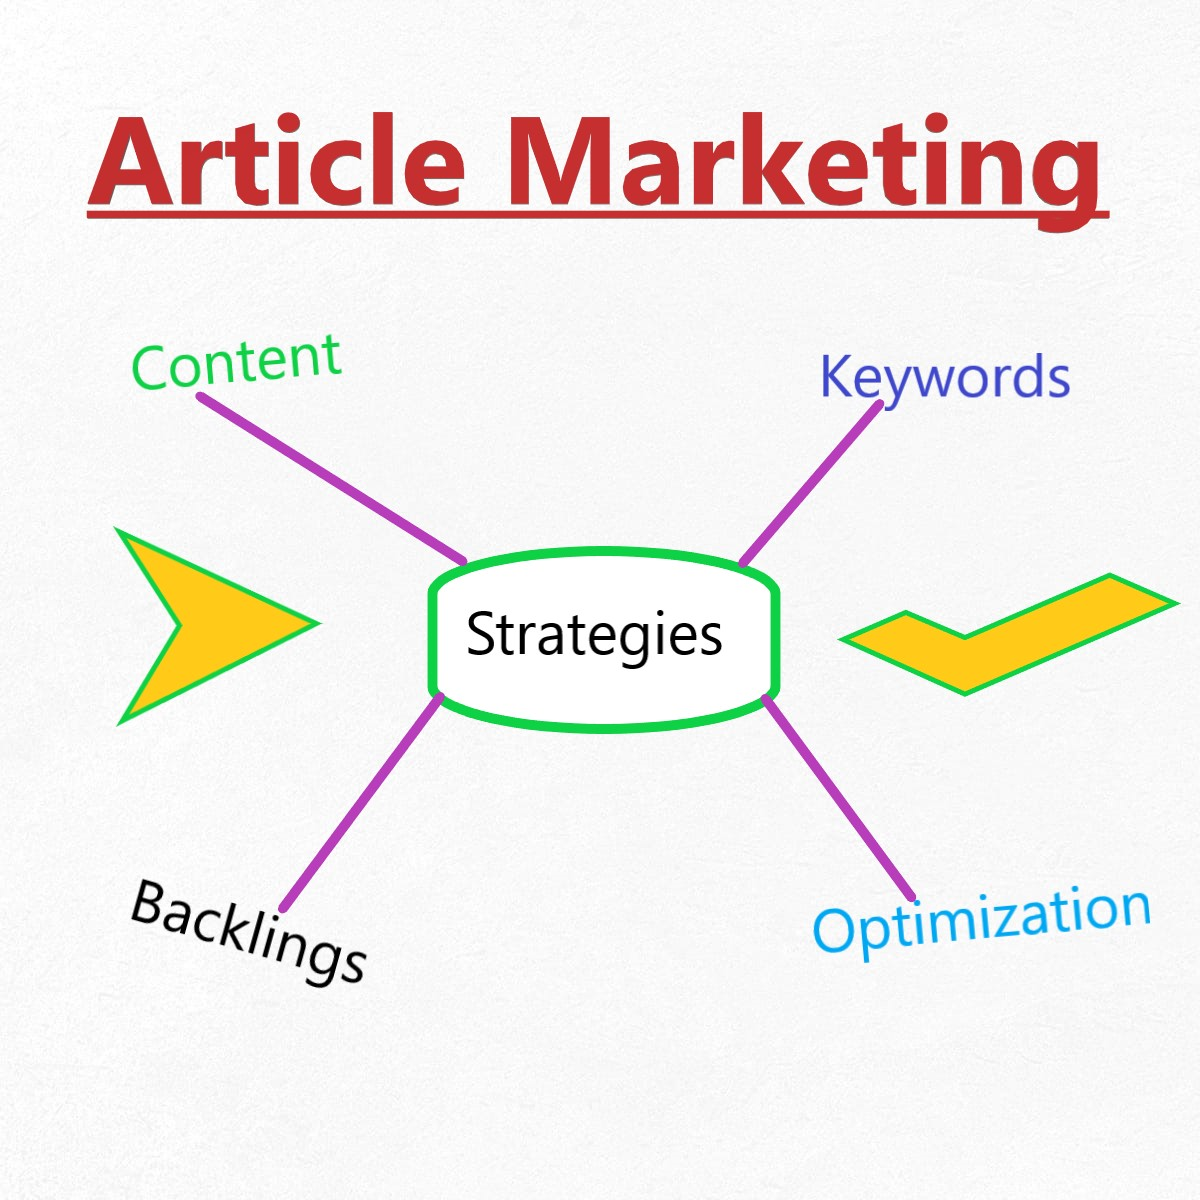 Article Marketing - Full Guide and stra